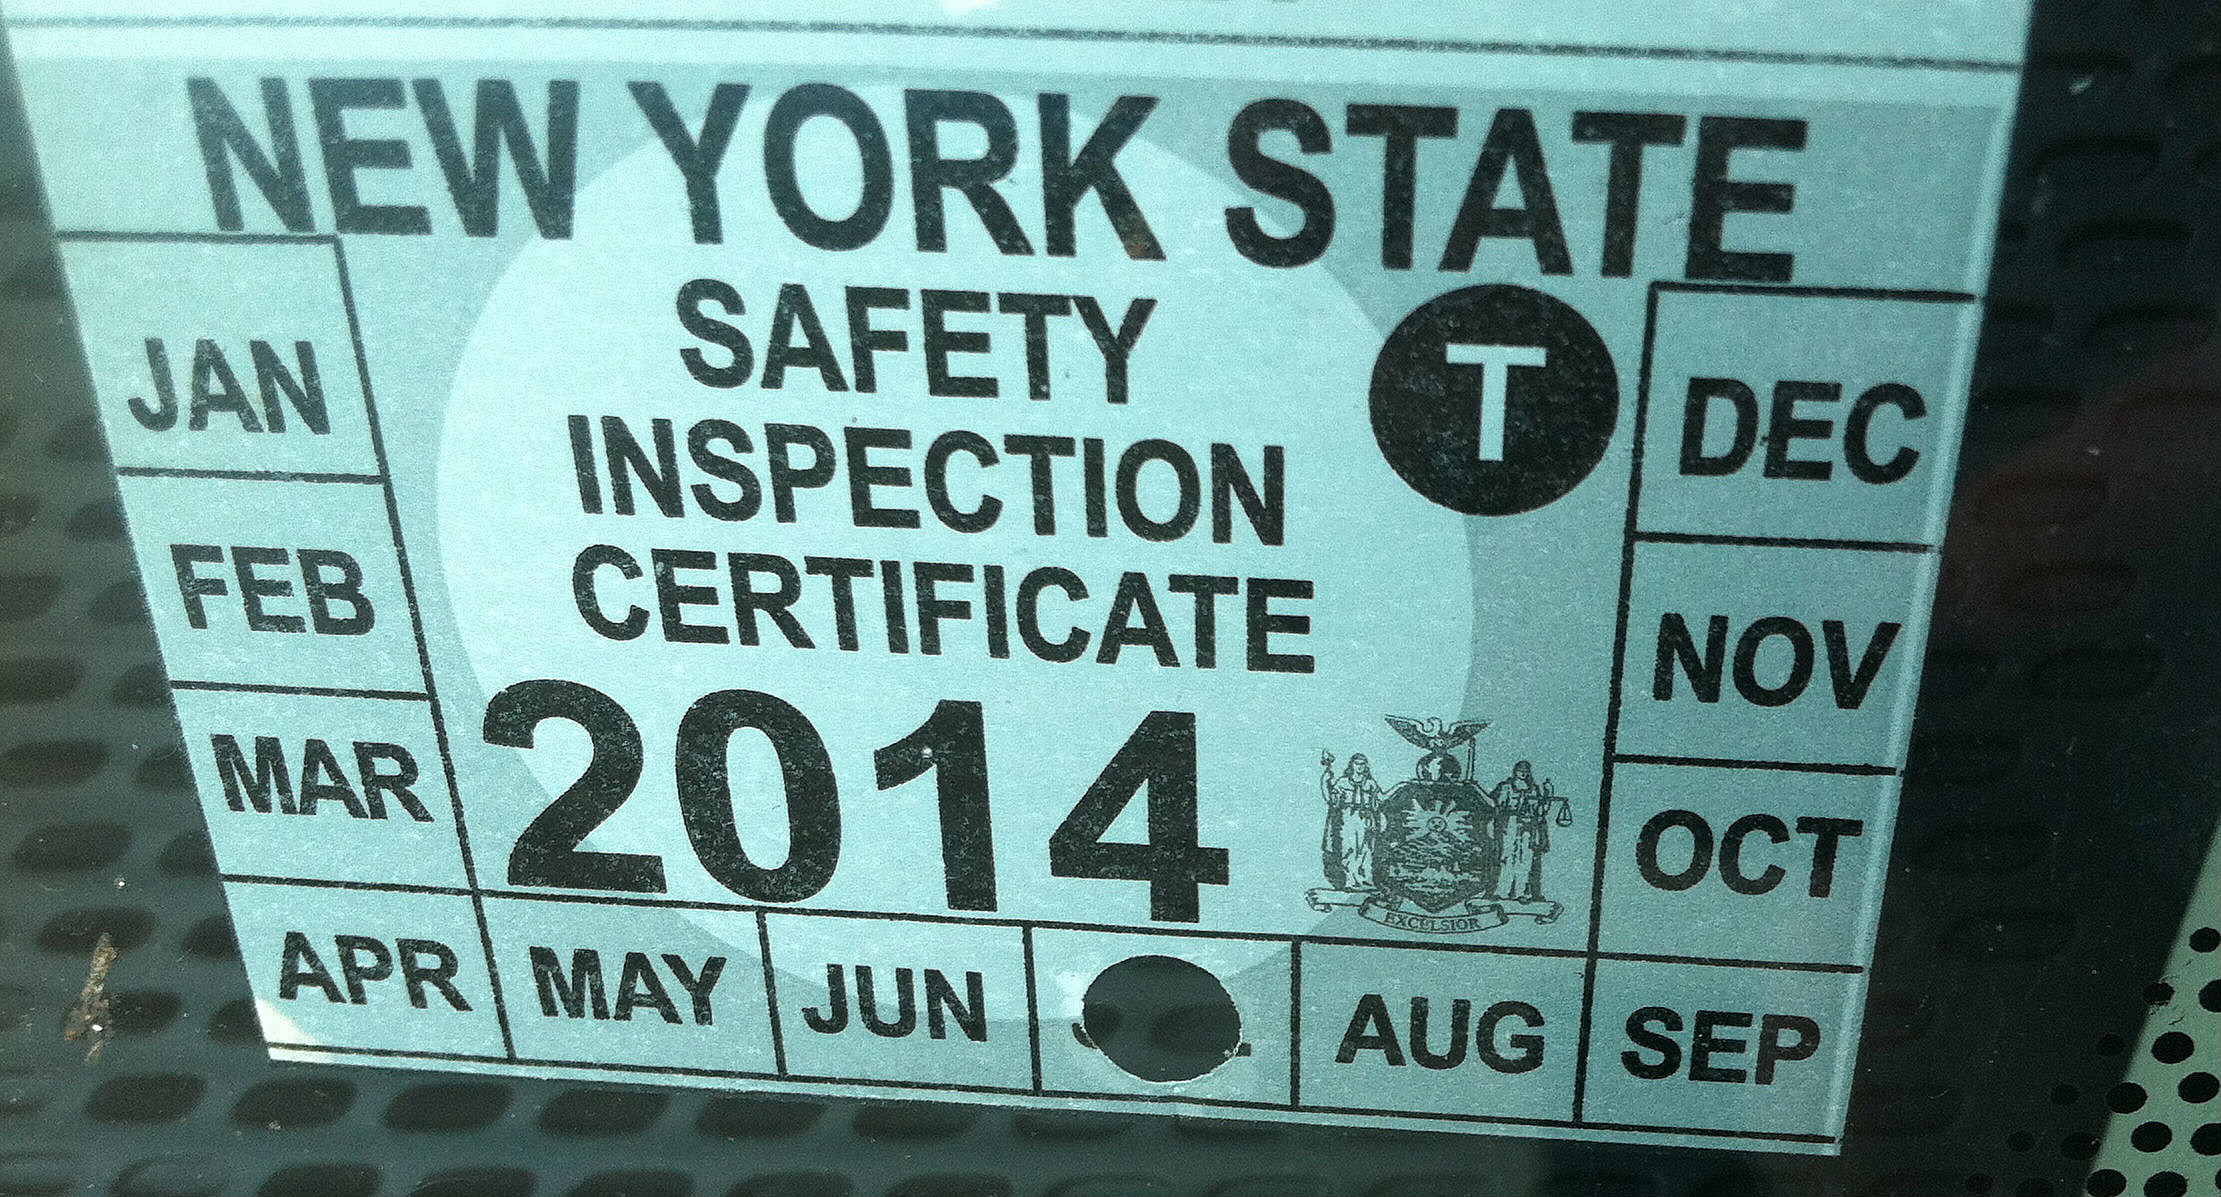 1968 New York INSPECTION Sticker